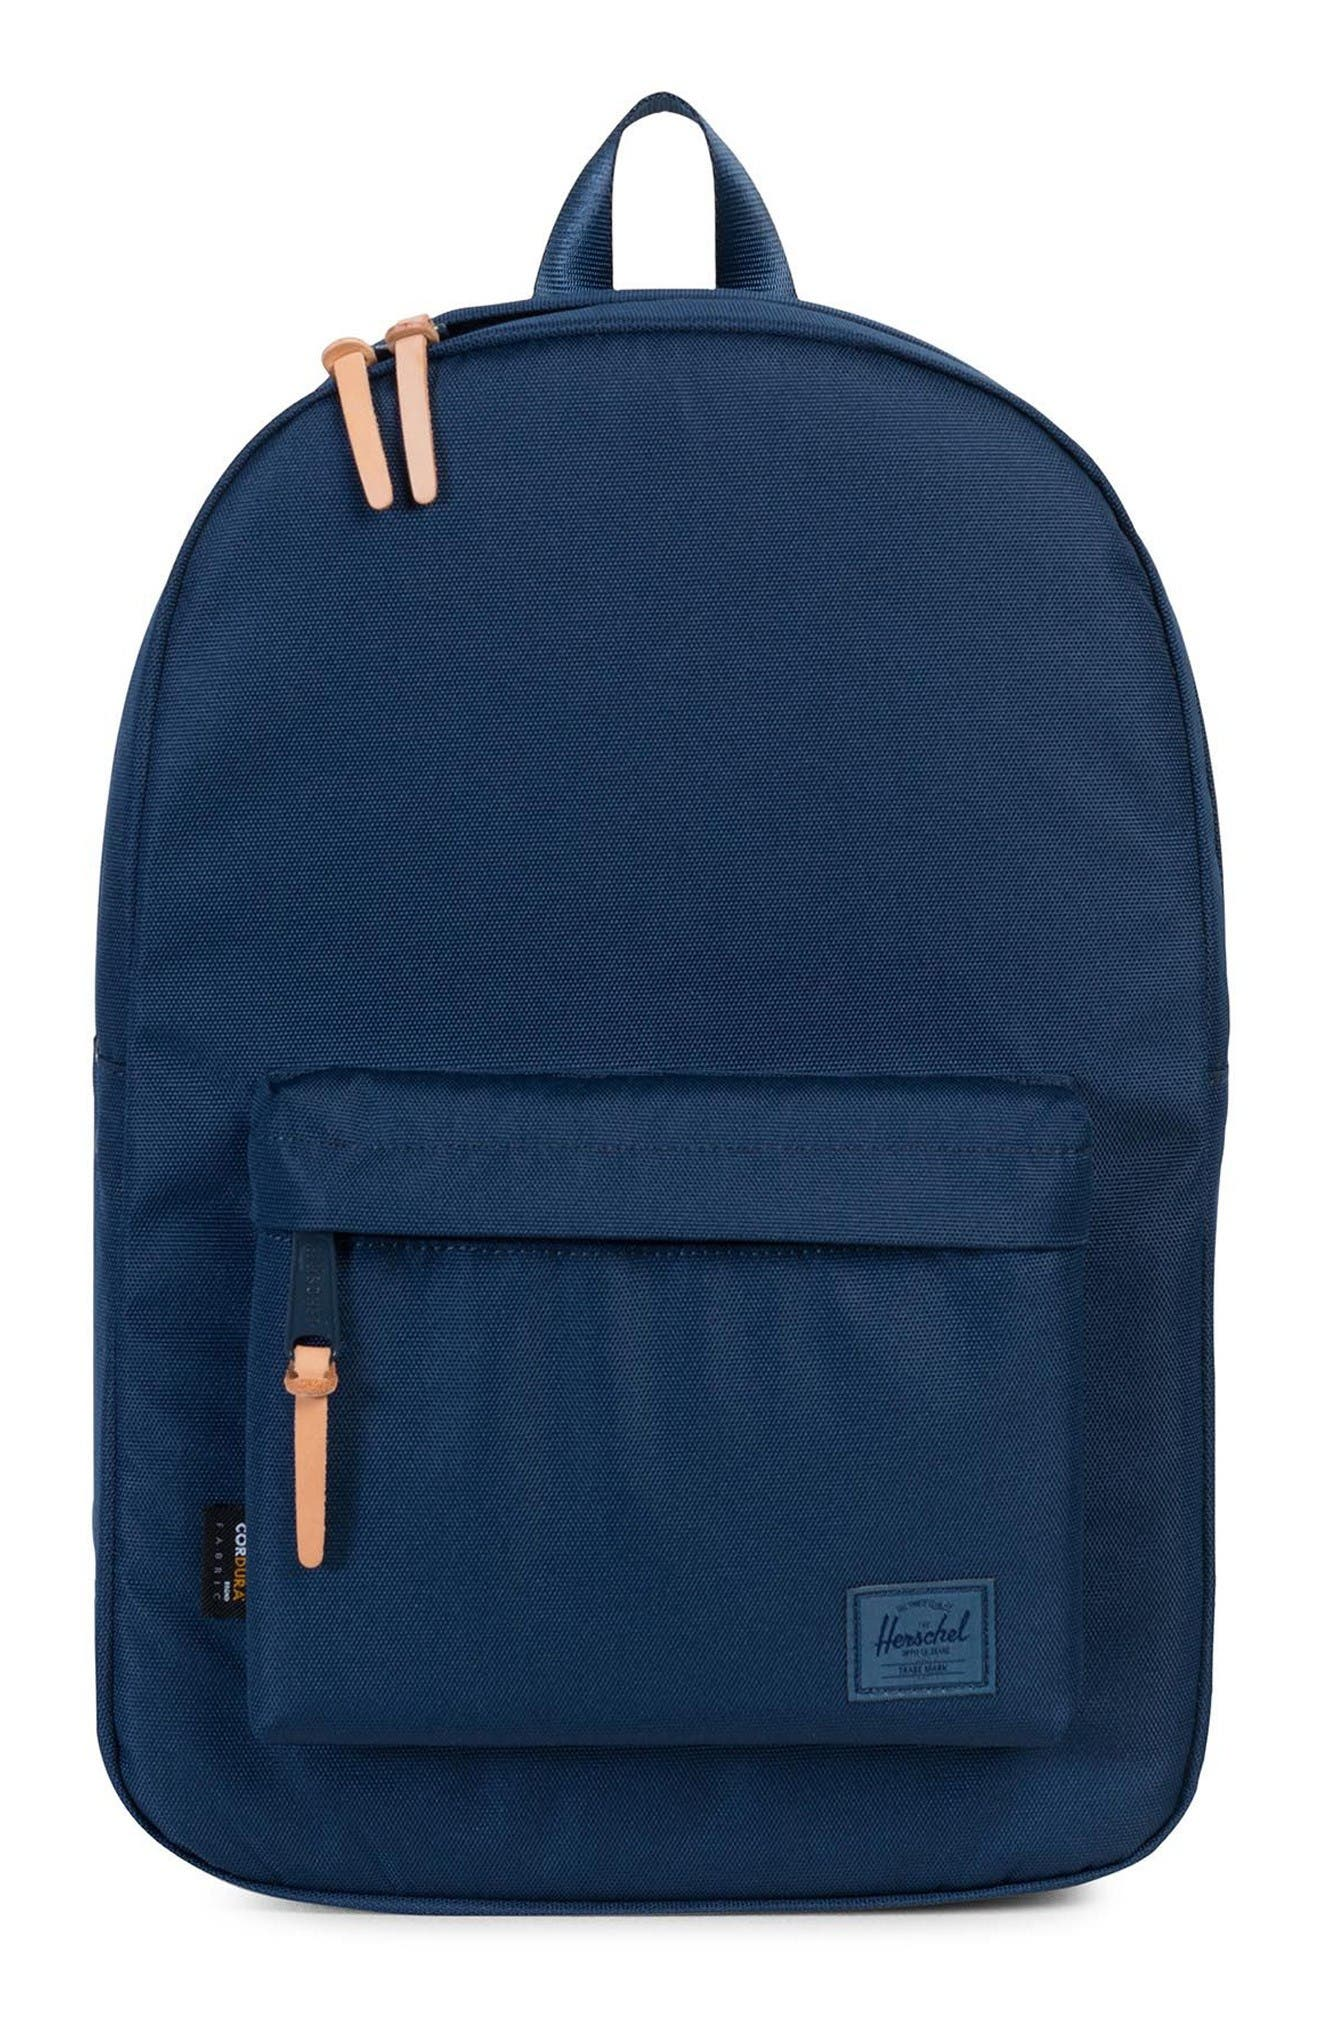 Main Image - Herschel Supply Co. Winlaw Backpack